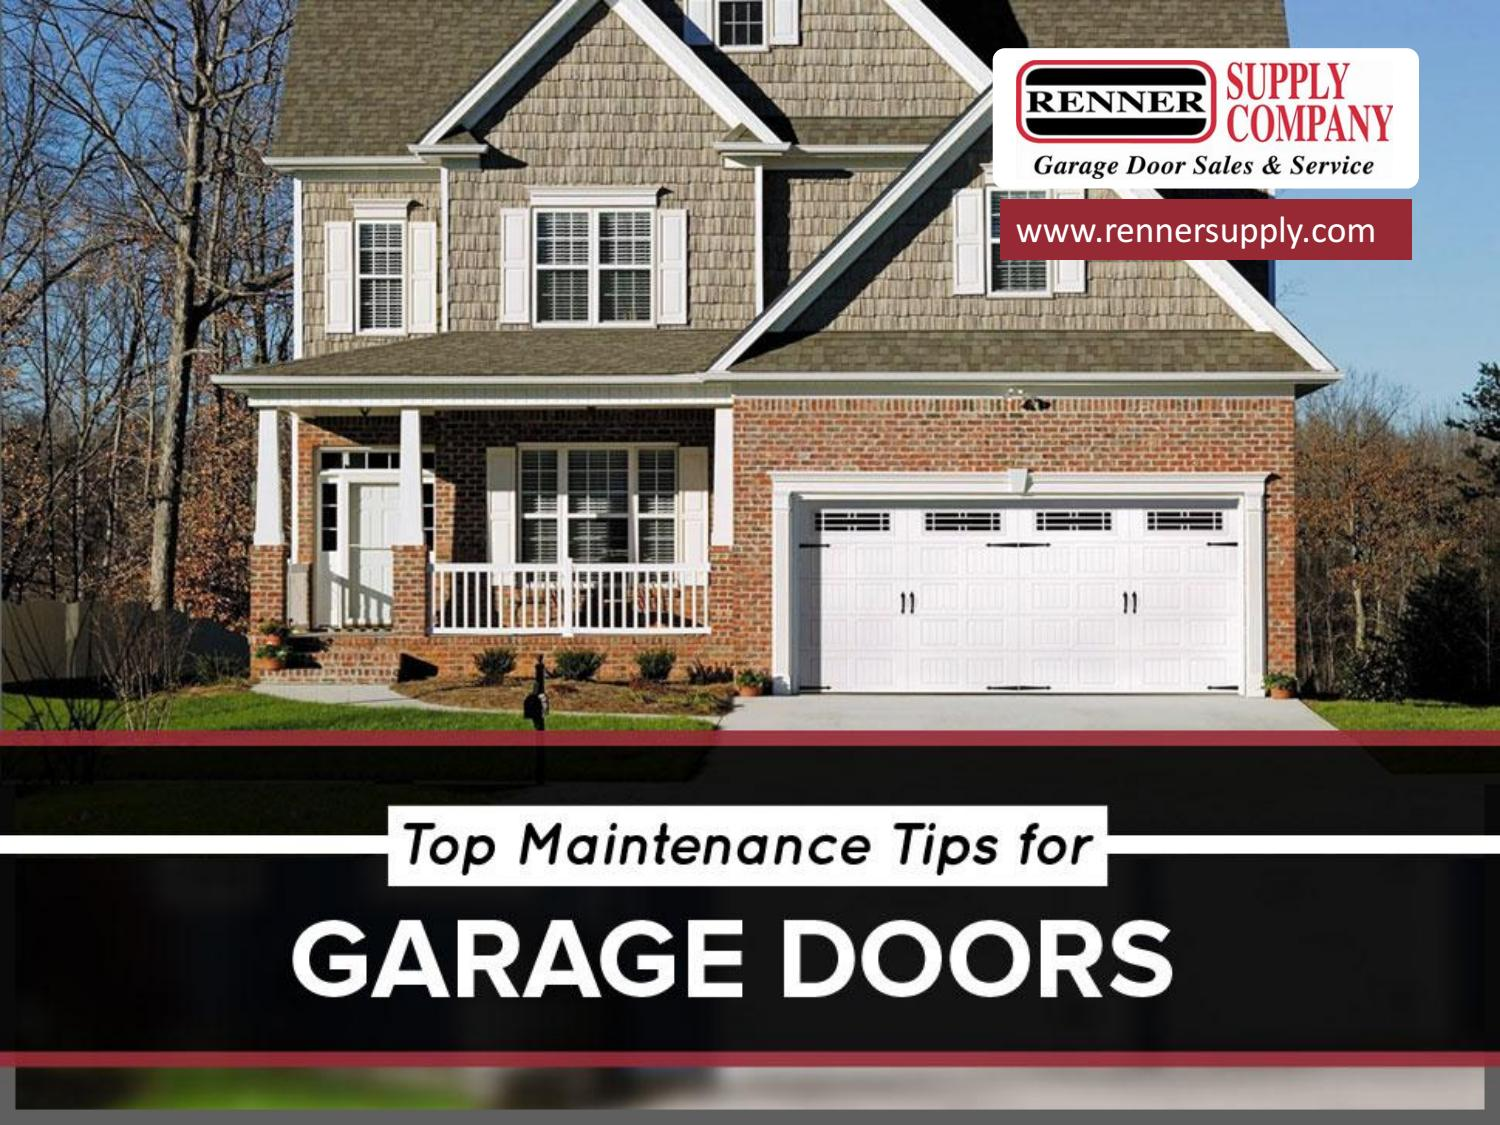 Top Maintenance Tips For Garage Doors By Renner Supply Company   Issuu